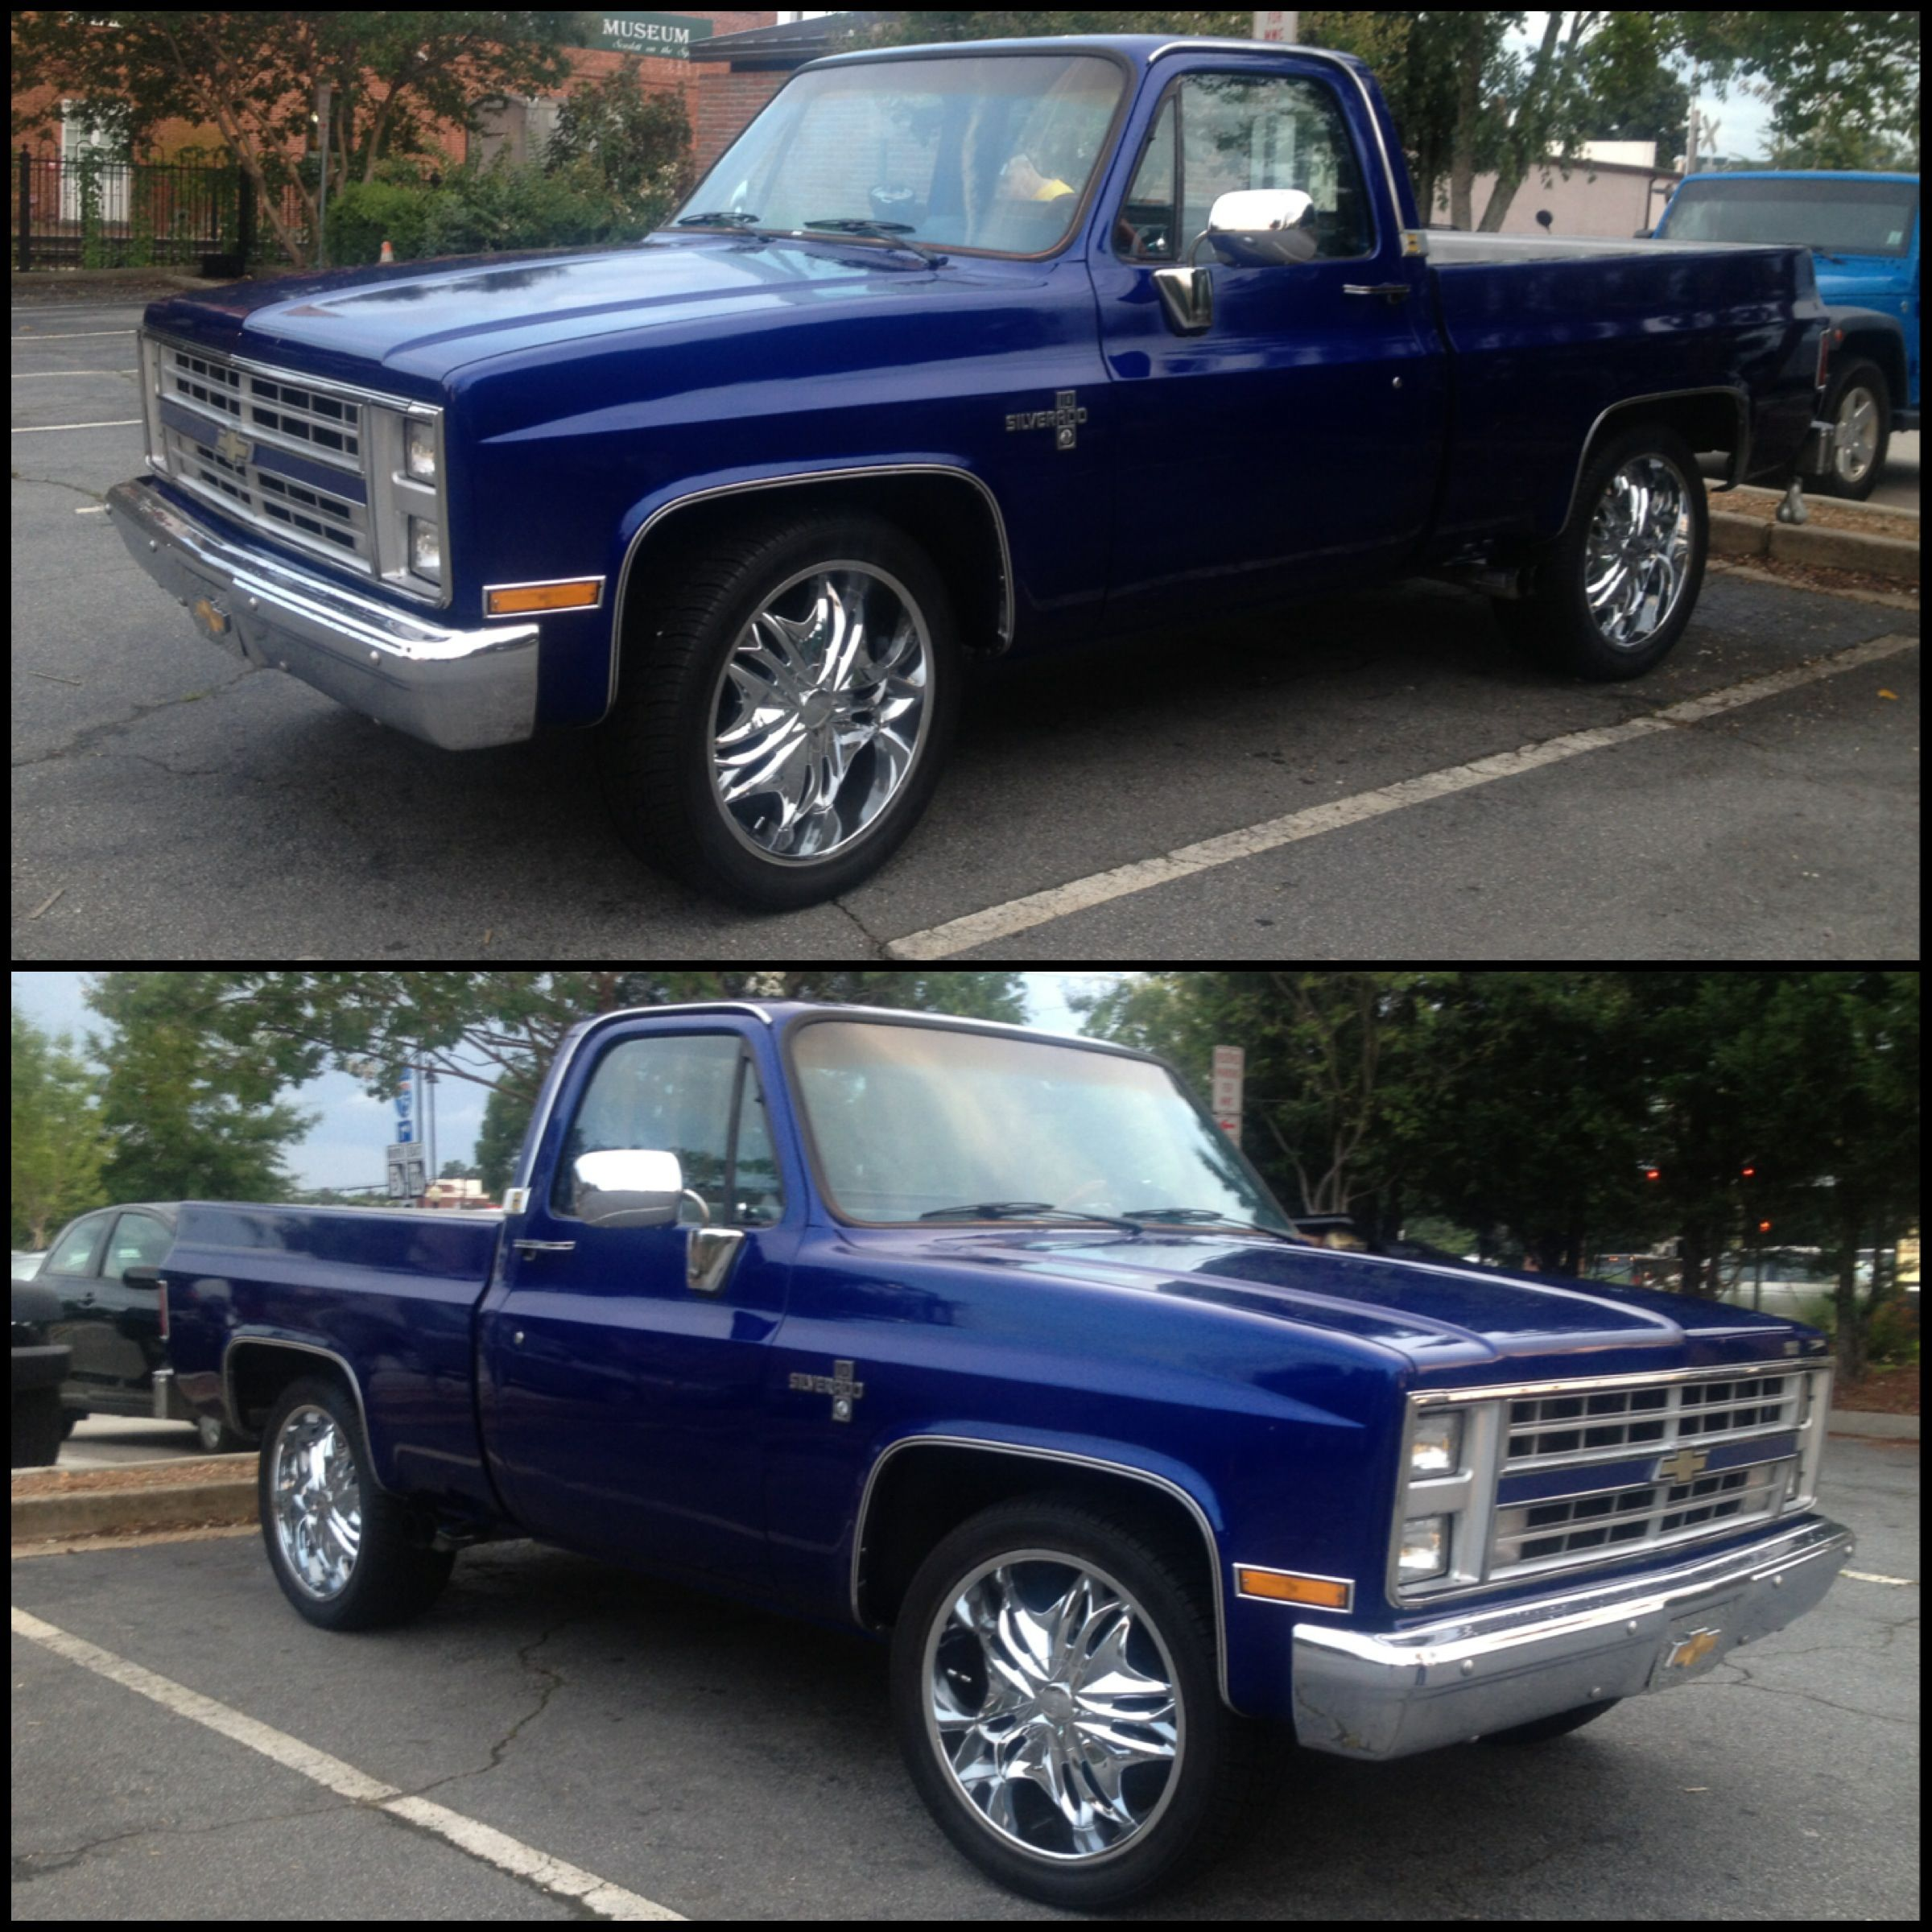 hight resolution of 1981 chevy silverado blue over blue 350 350